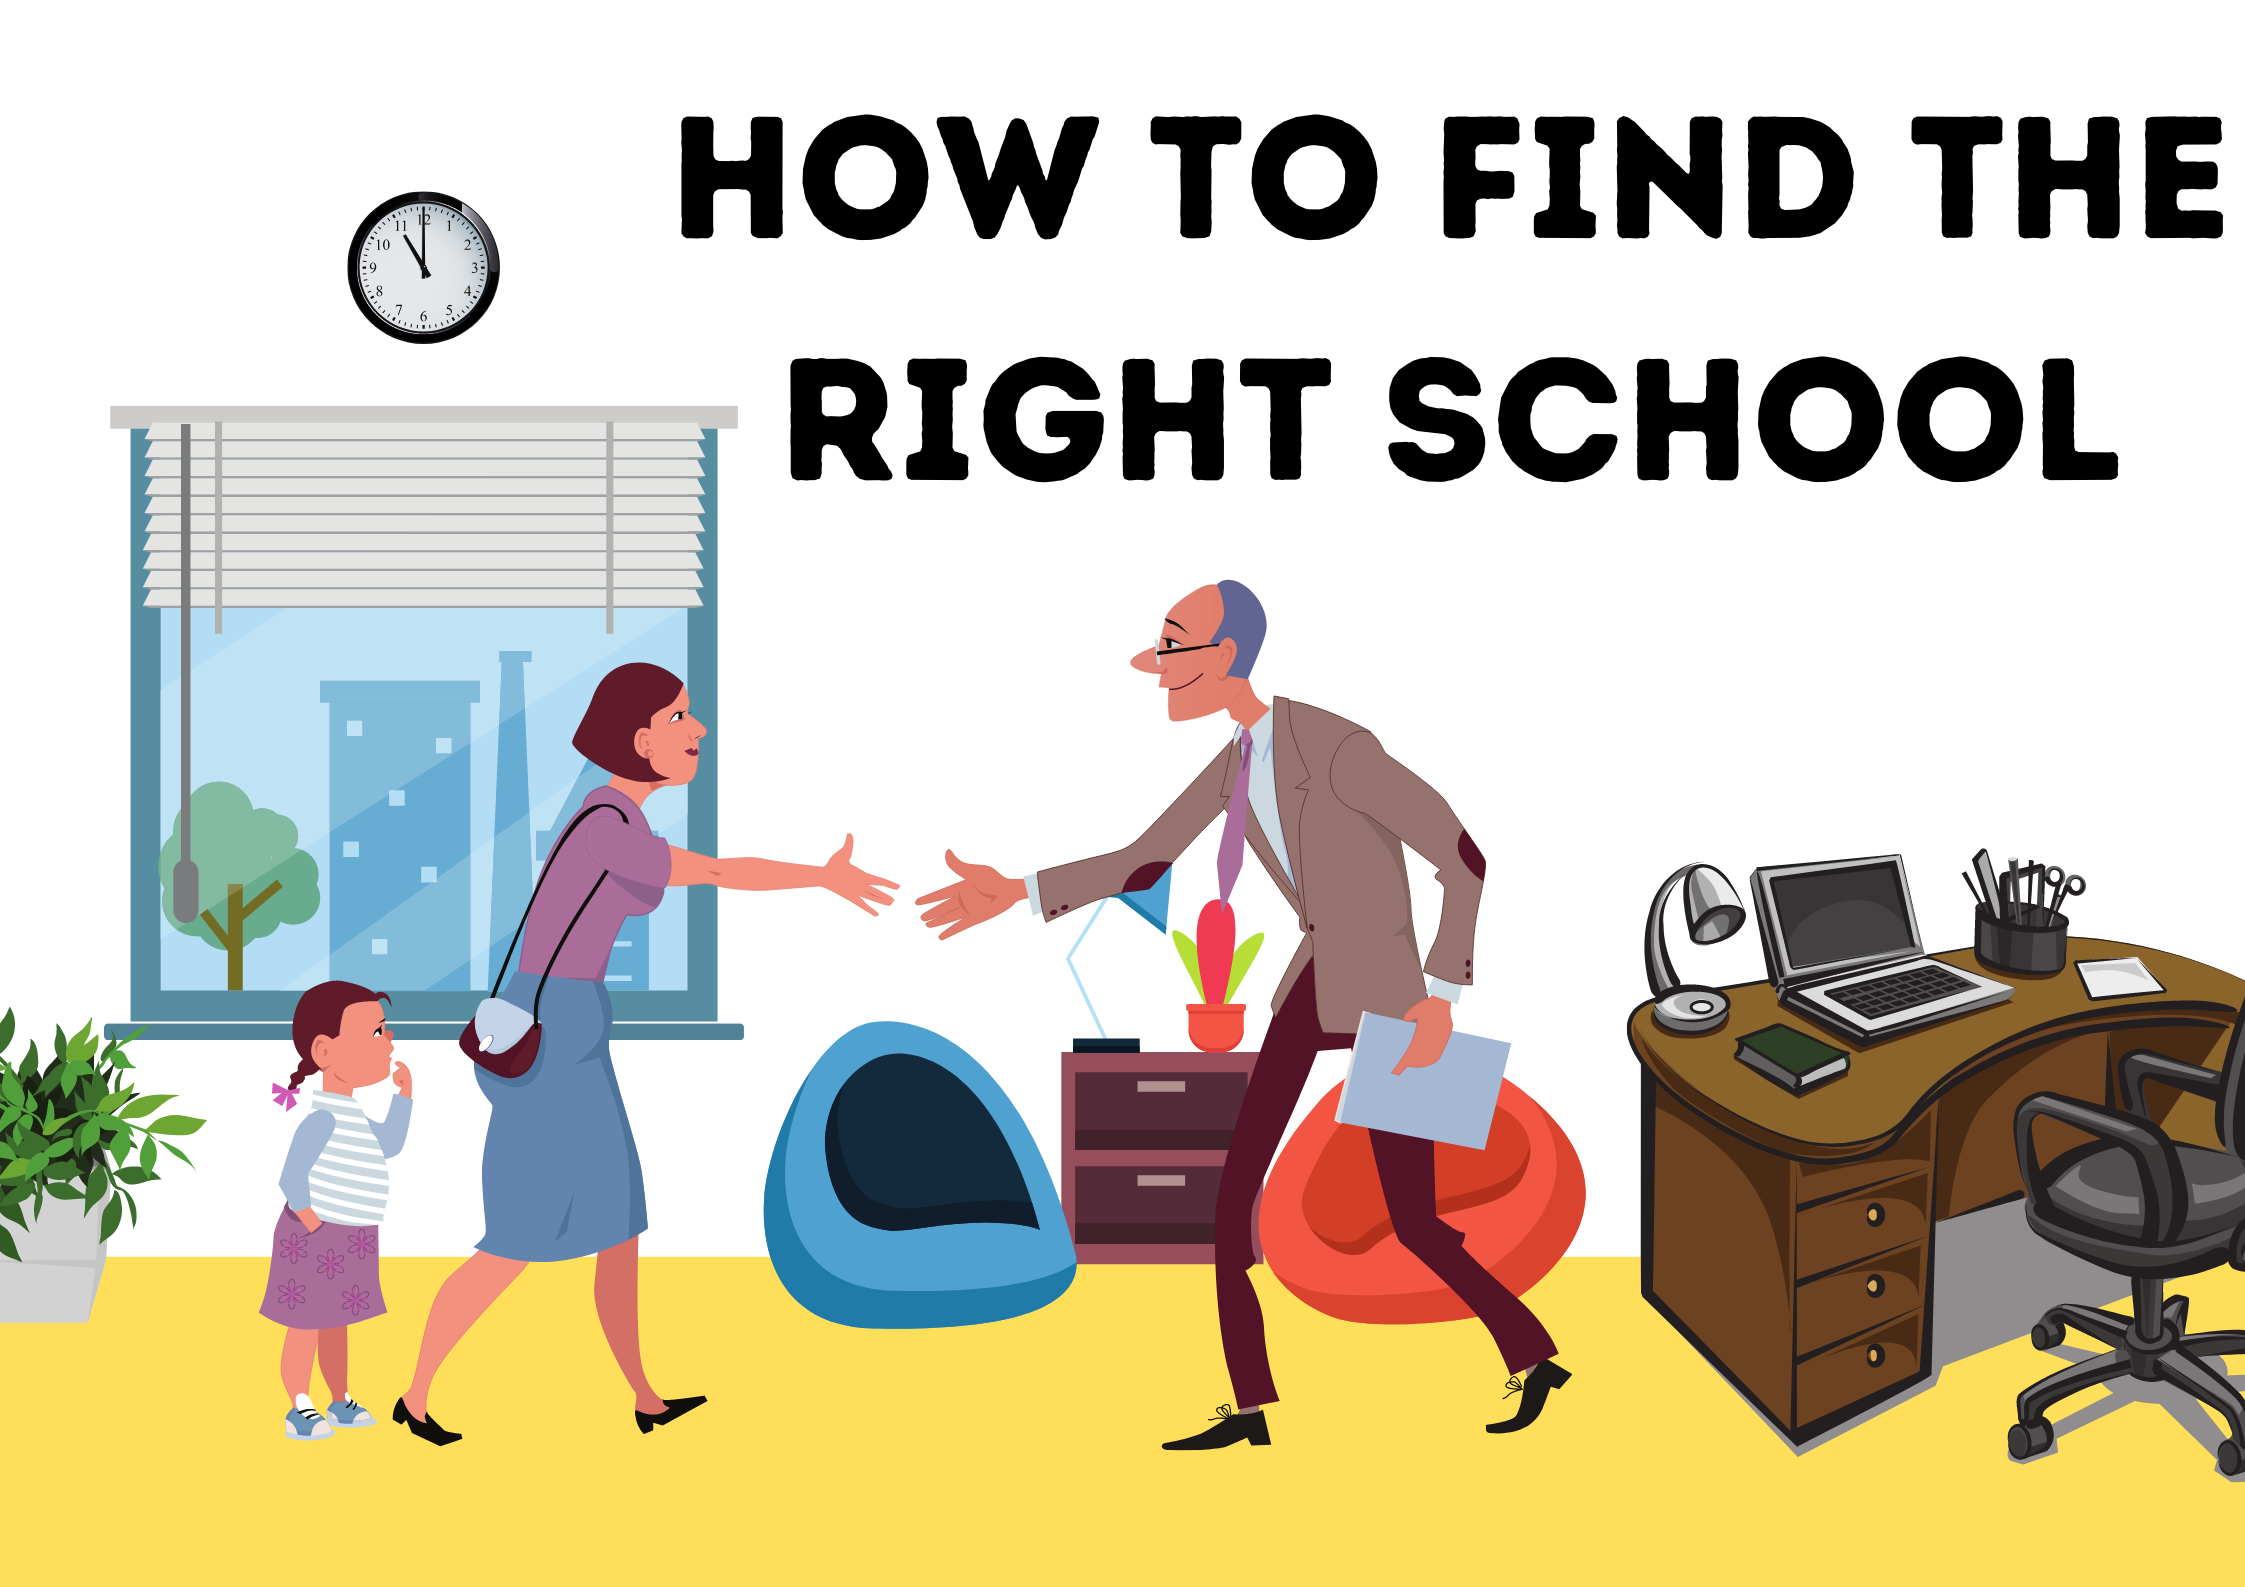 How-To-Find-the-Right-School